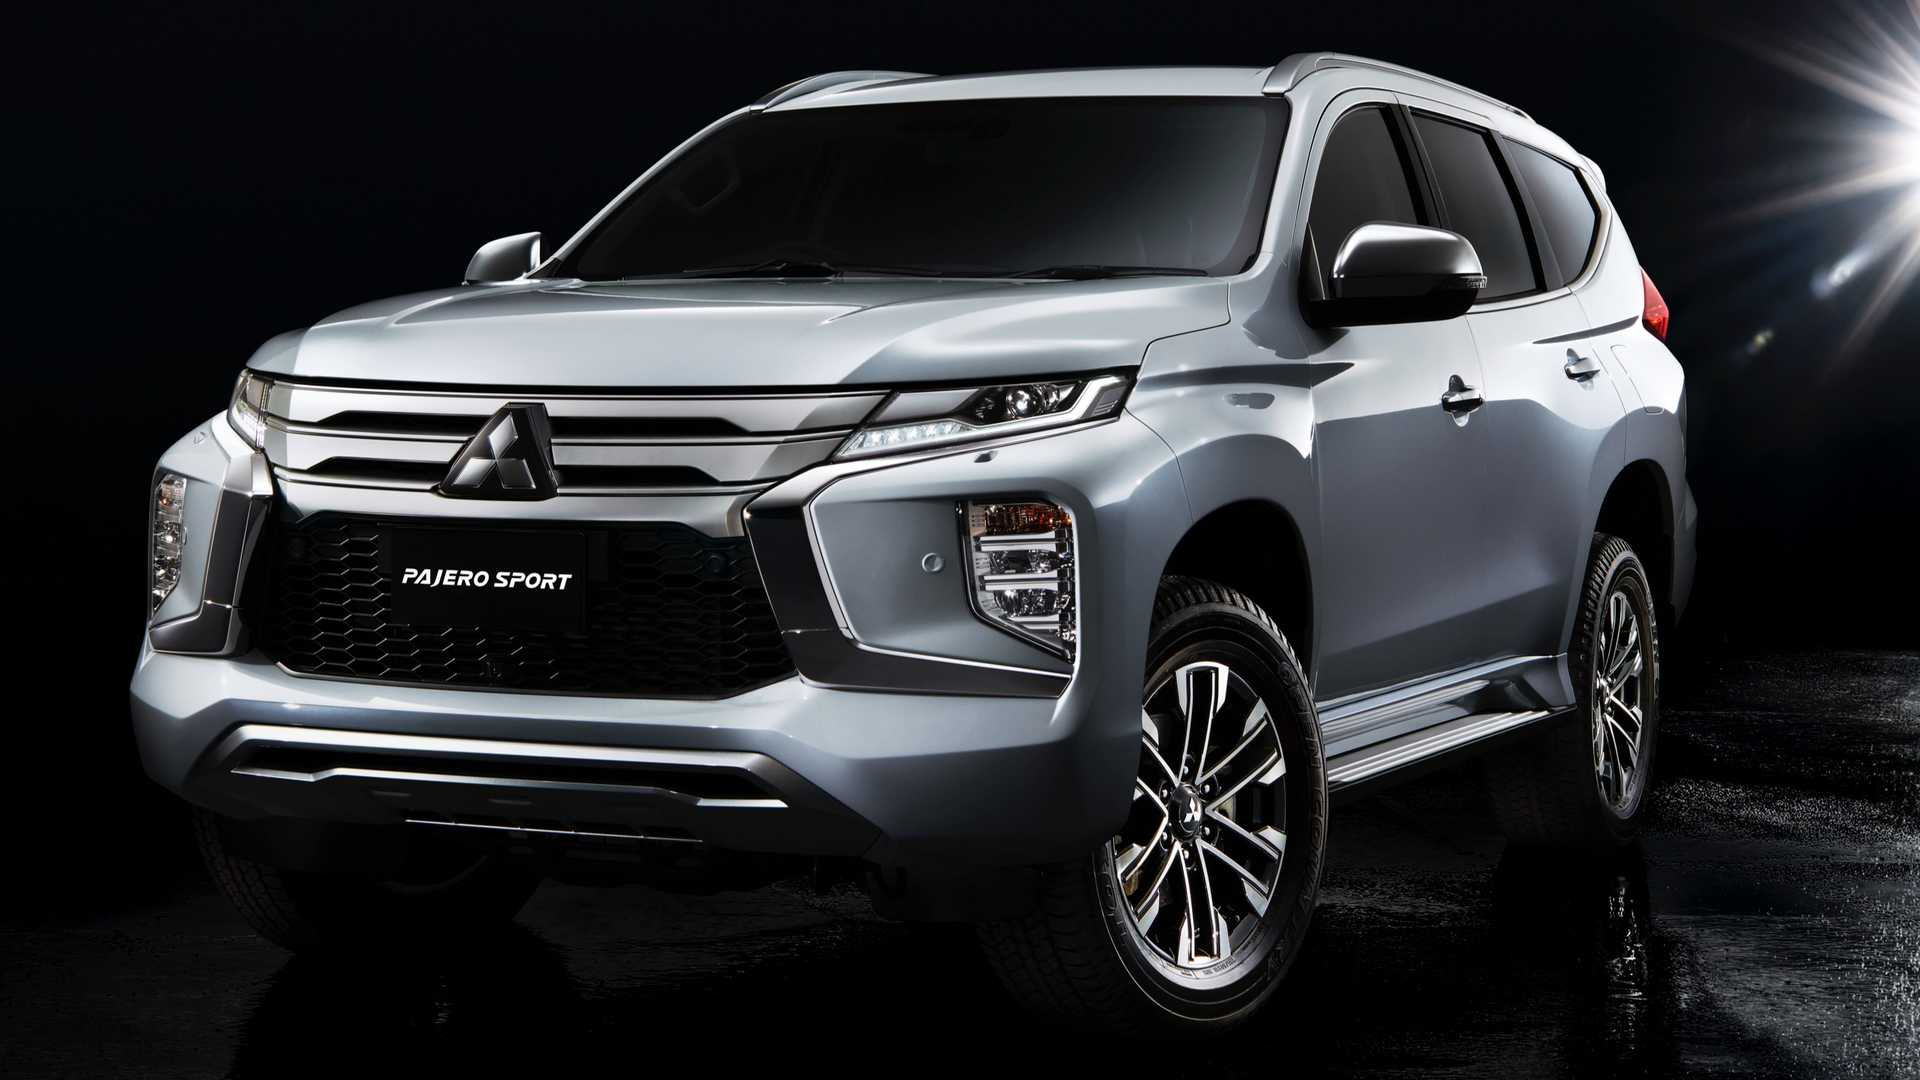 40 Concept of 2020 Mitsubishi Vehicles Picture for 2020 Mitsubishi Vehicles